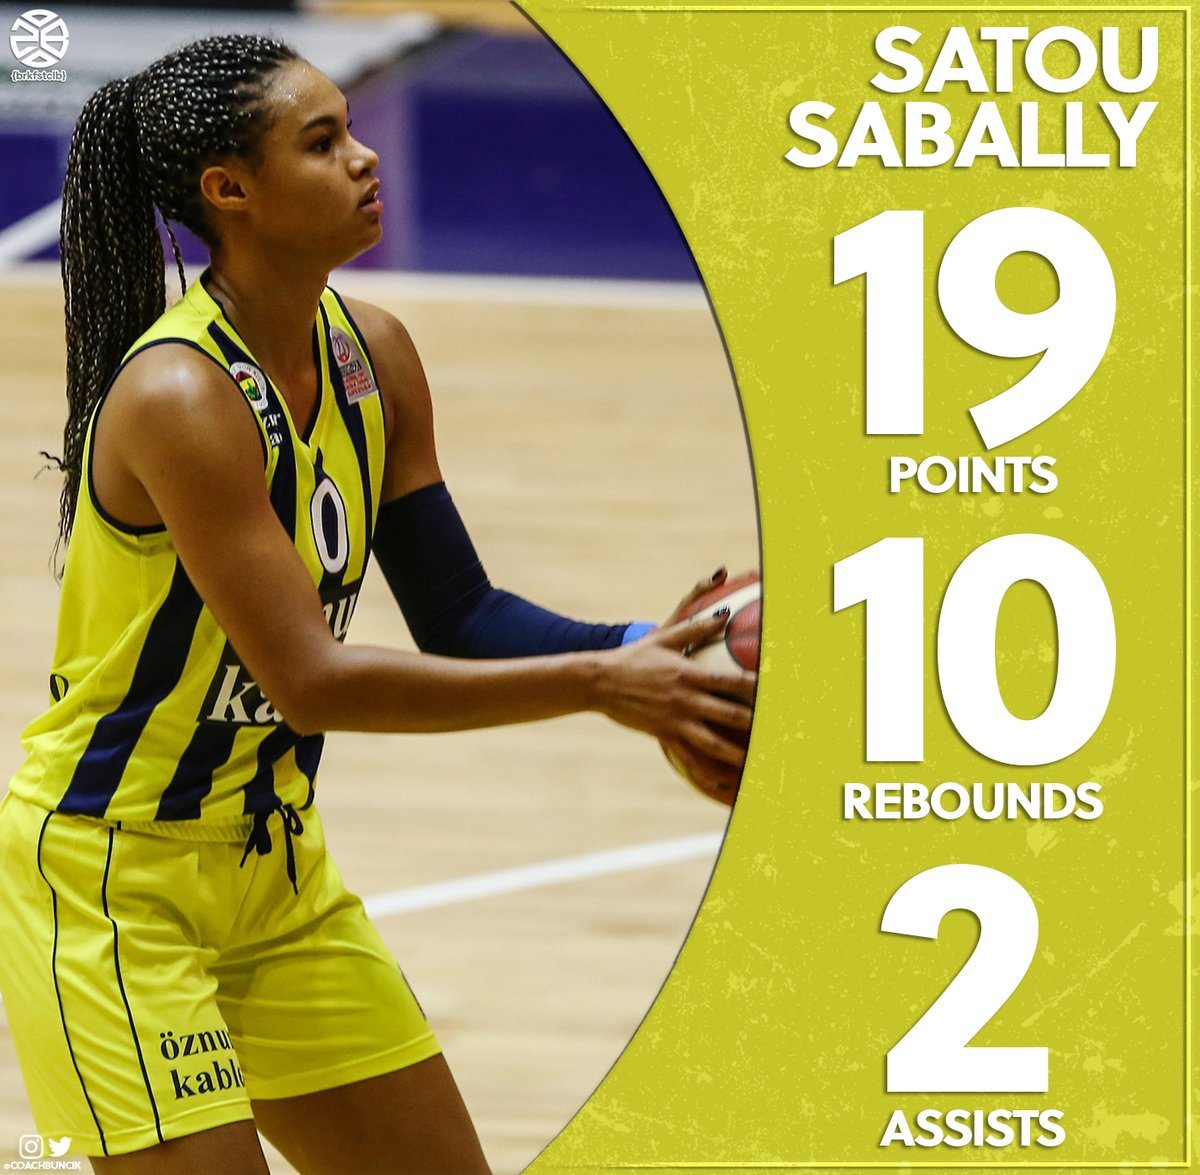 Satou Sabally (@satou_sabally) With Another Impressive Double Double Performance Today In The @FBKadinBasket Win! #brkfstclb https://t.co/vHGx8BZE24